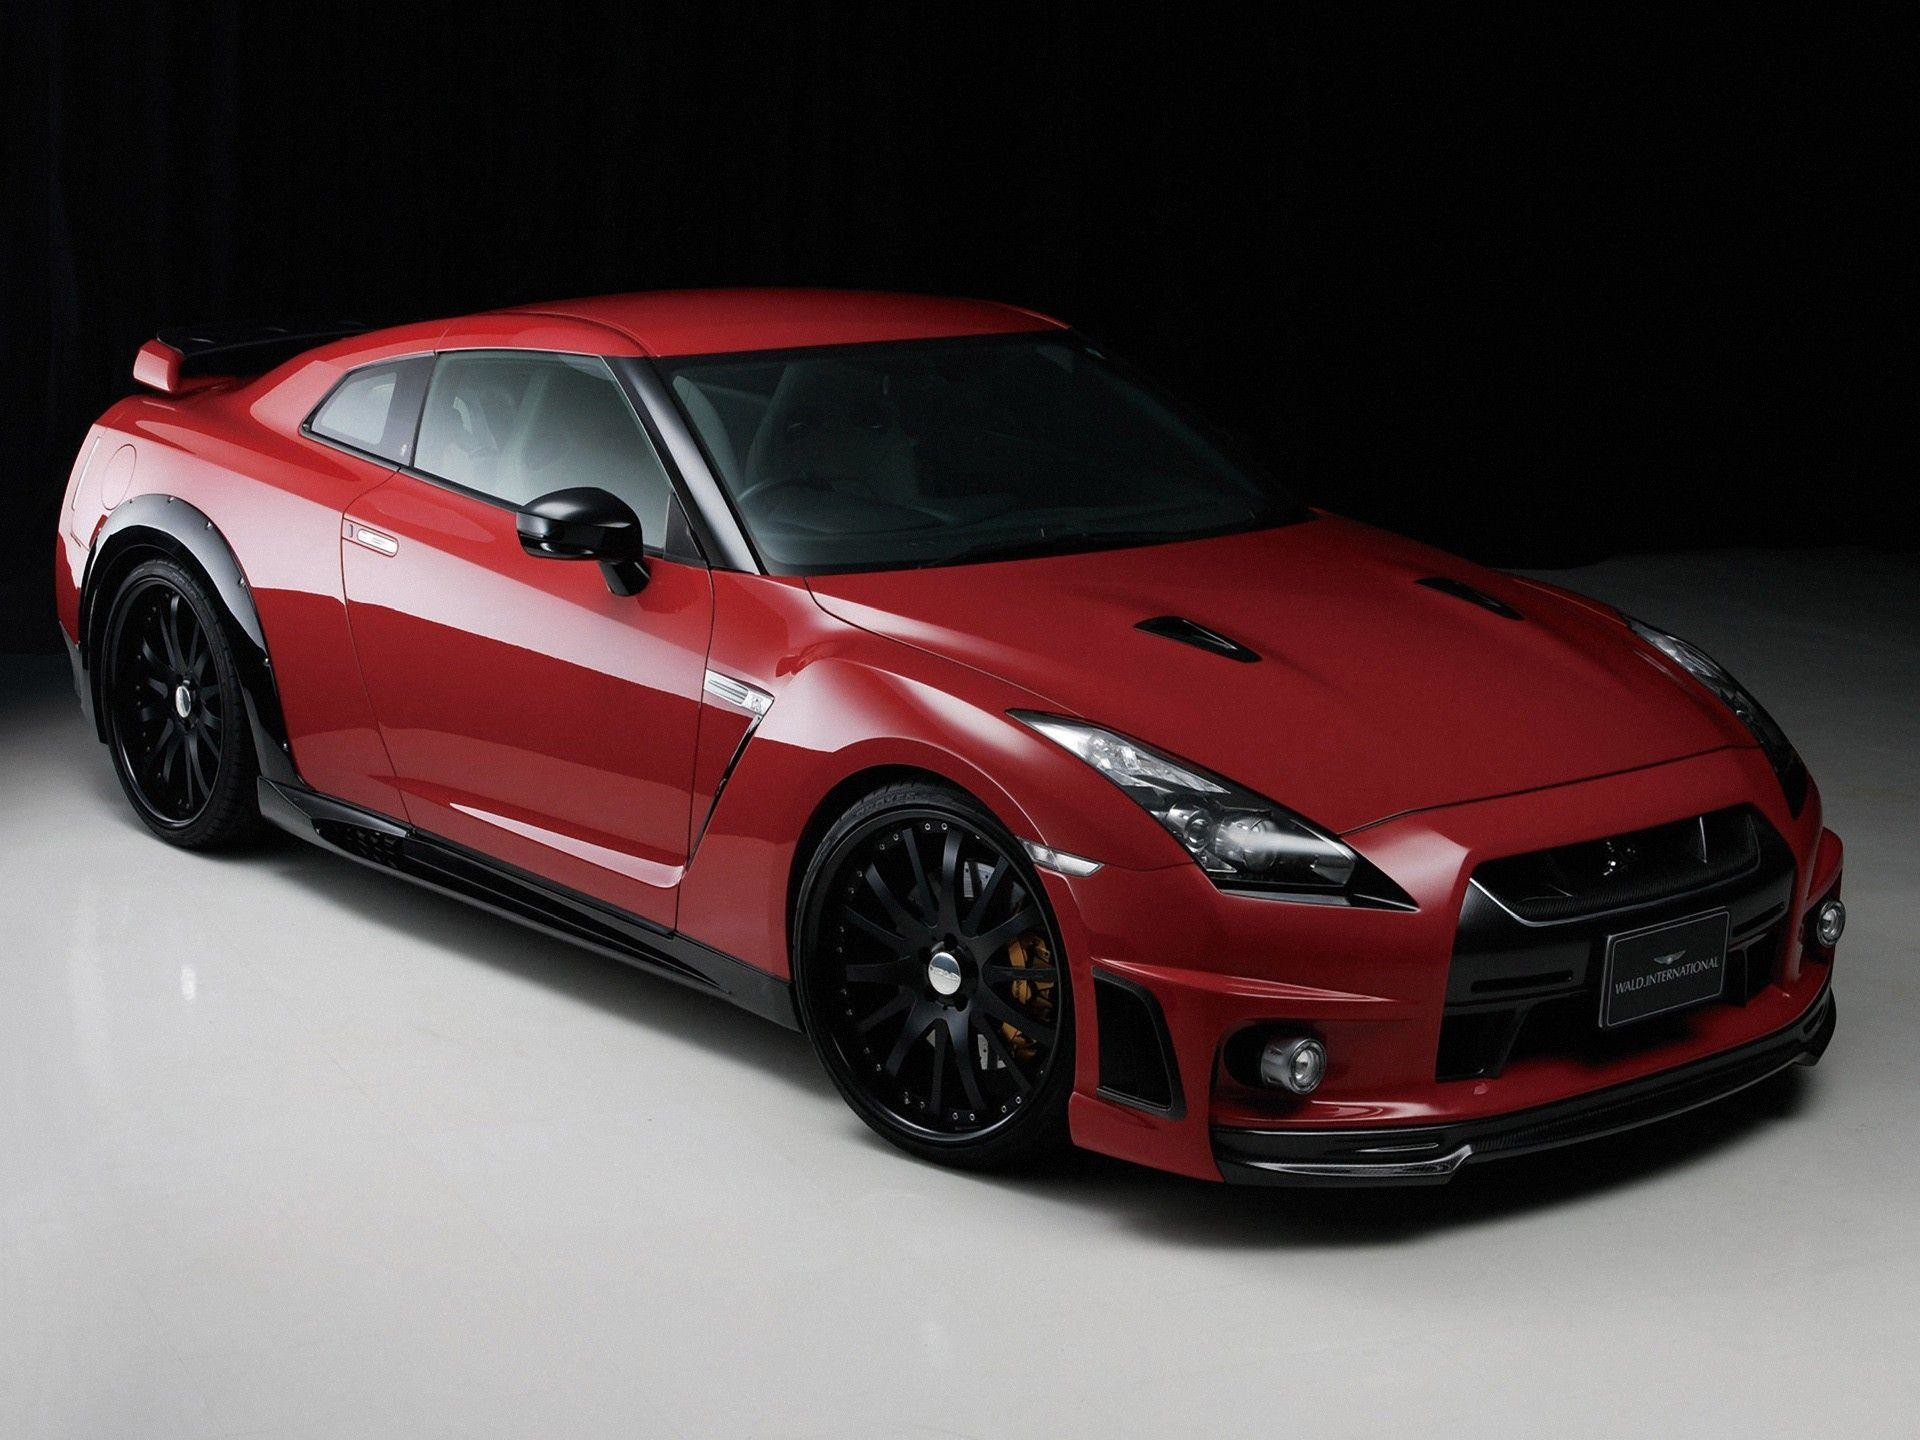 2015 Red Nissan Skyline GTR R35 Wallpaper HD – Cool Wallpapers .